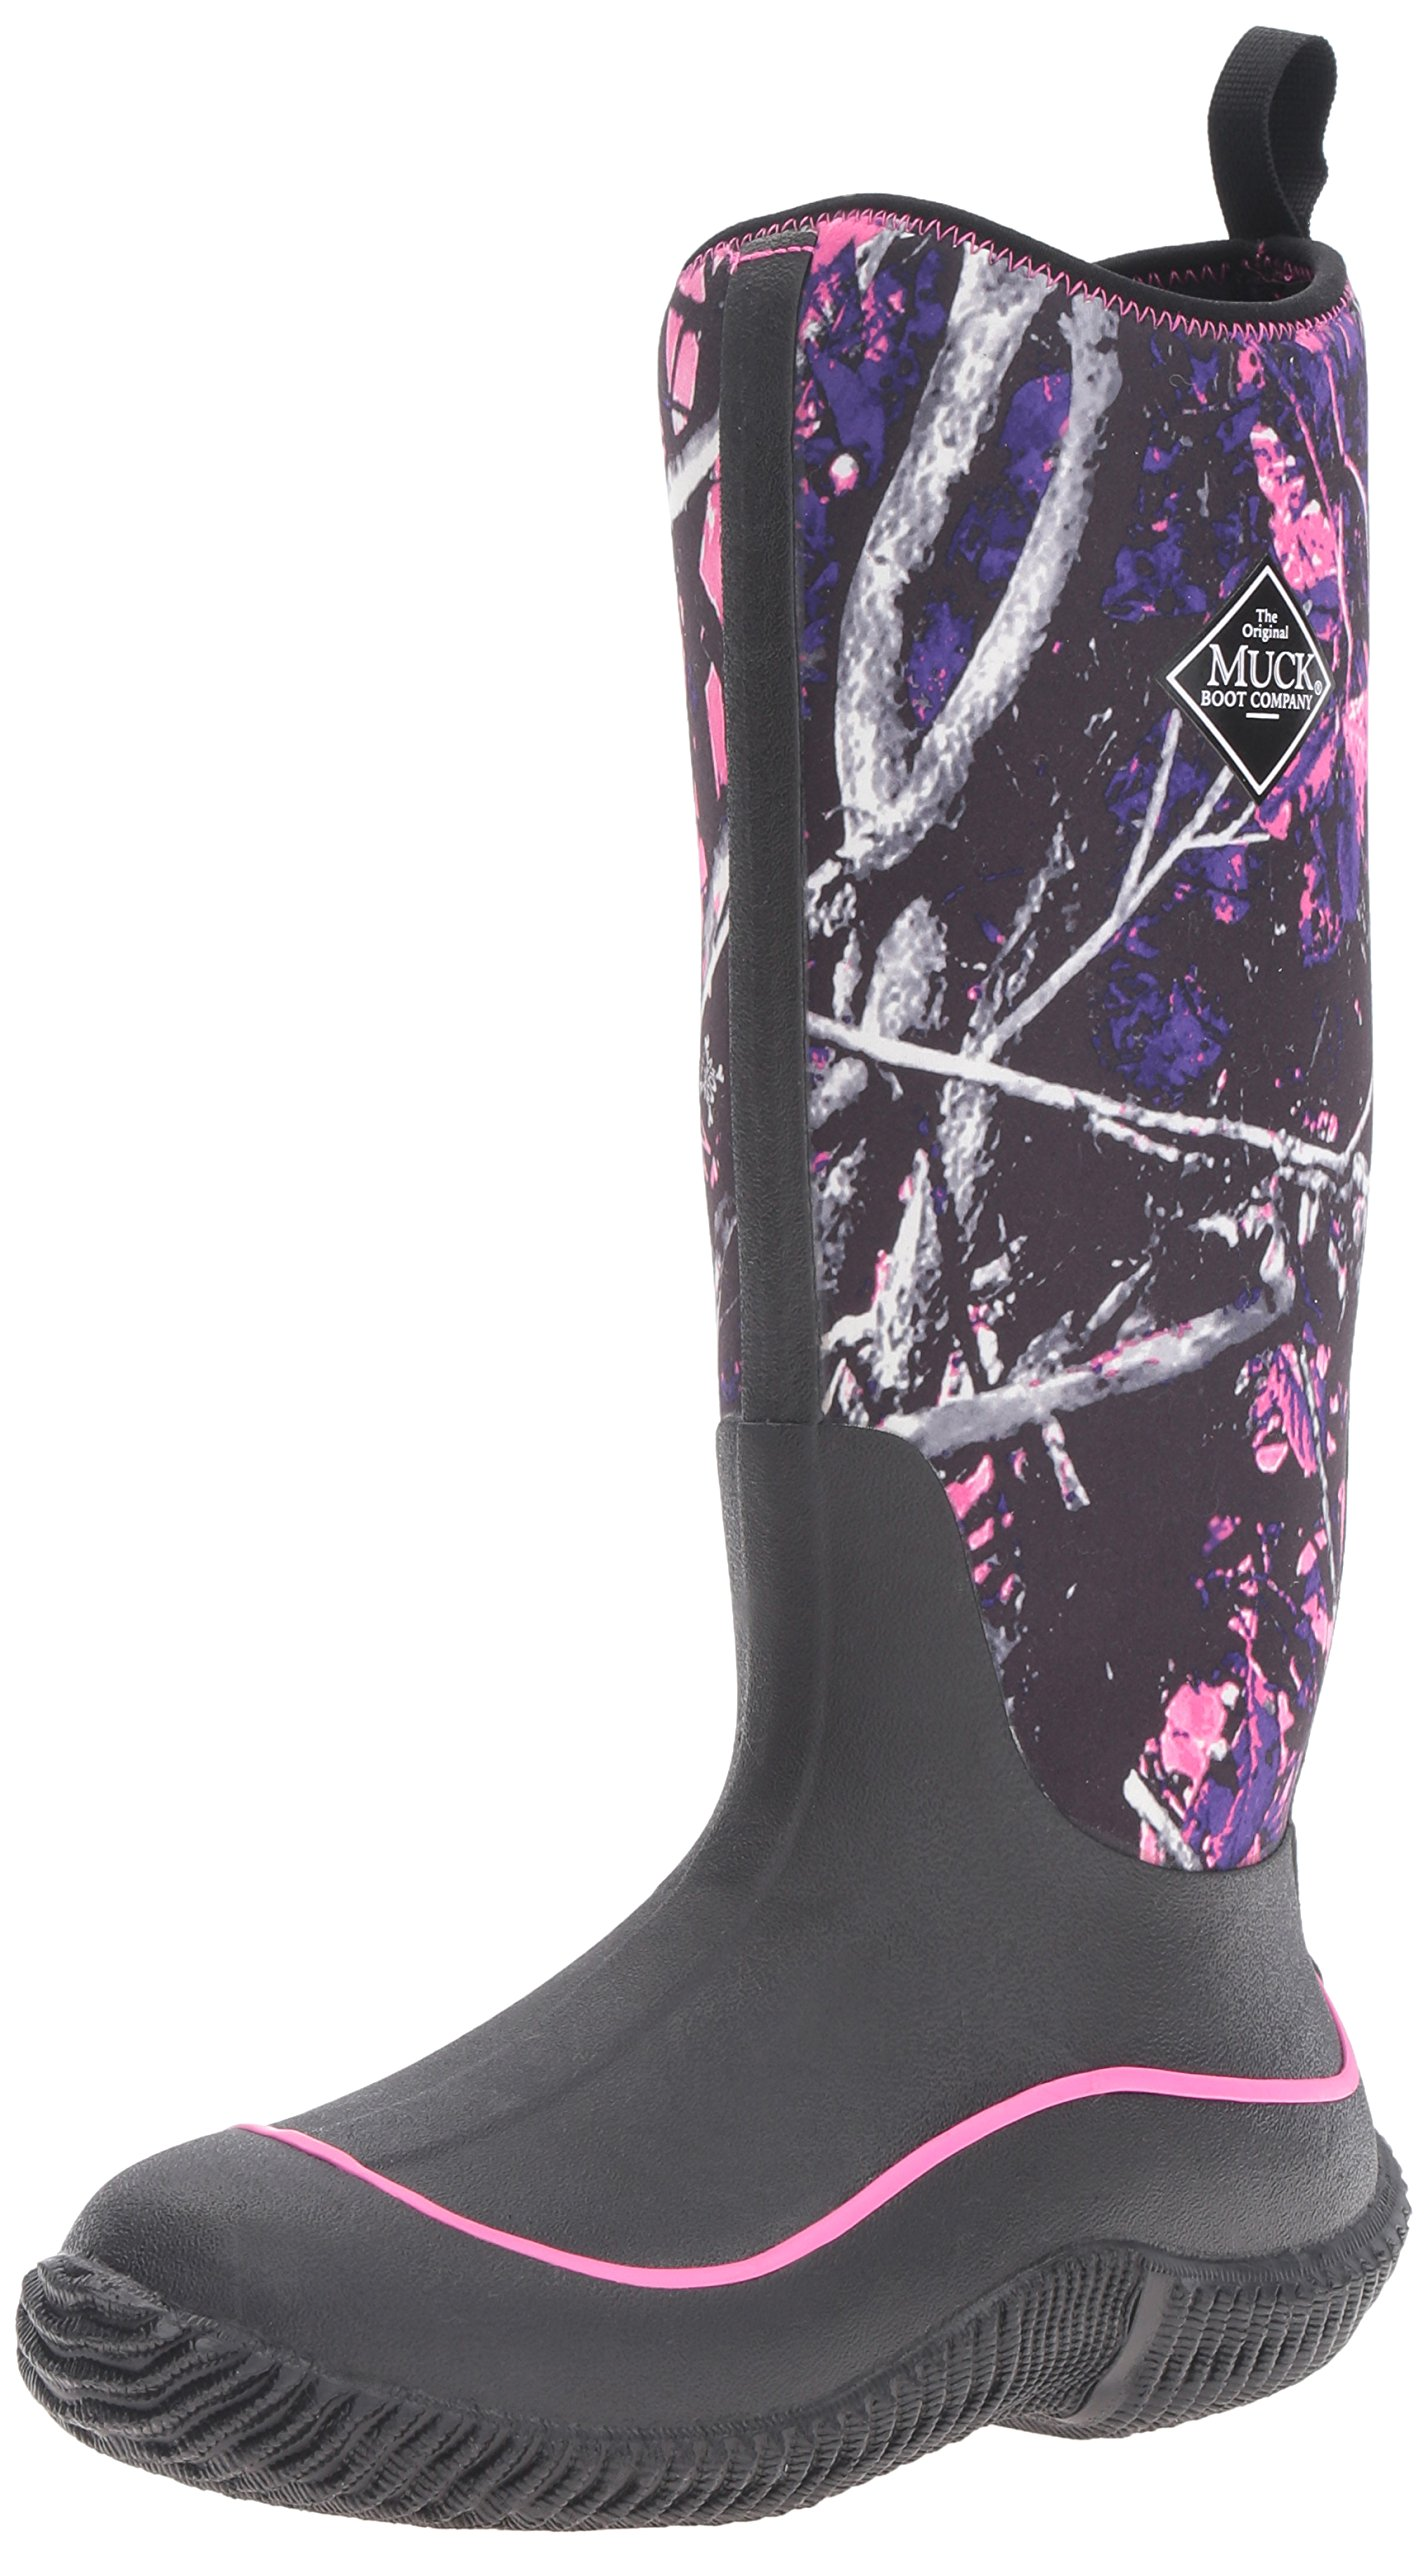 Muck Boot Women's Hale Snow Boot, Black/Muddy Girl Camo, 7 M US by Muck Boot (Image #1)